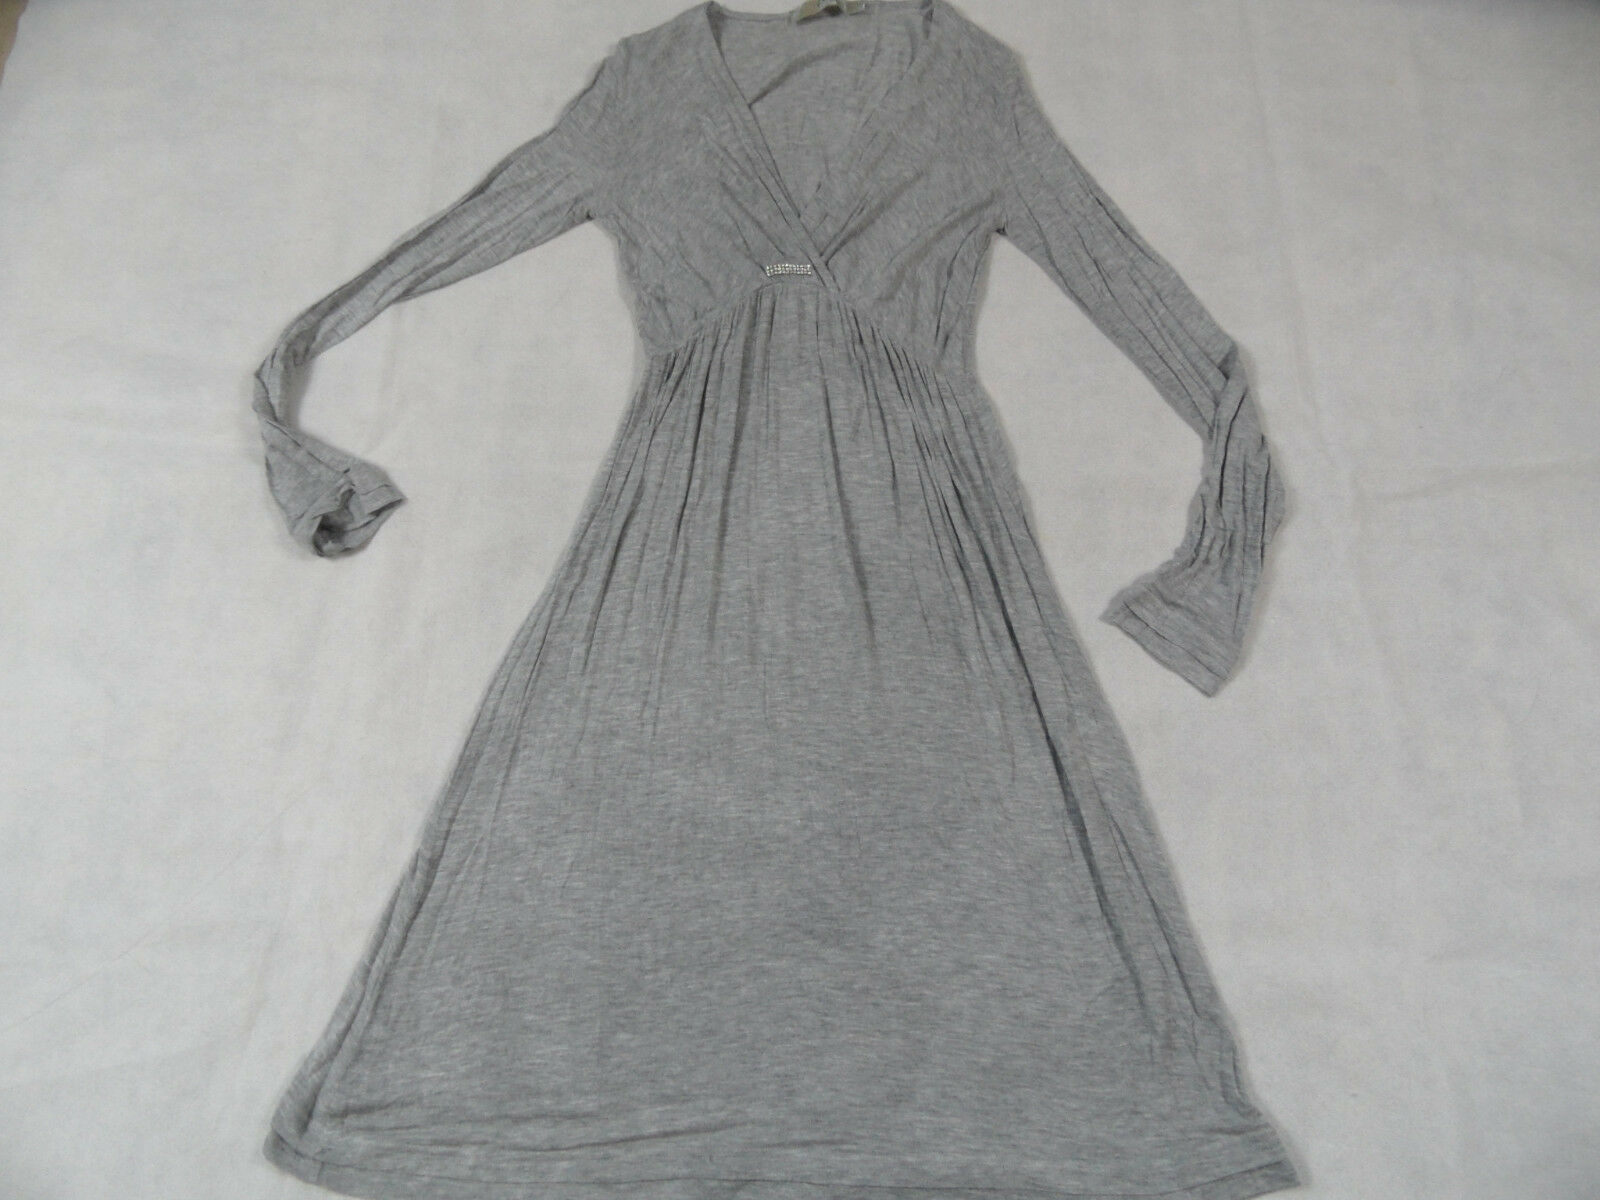 BOTTEGA leichtes Strickkleid grau Gr. L TOP KoS1218